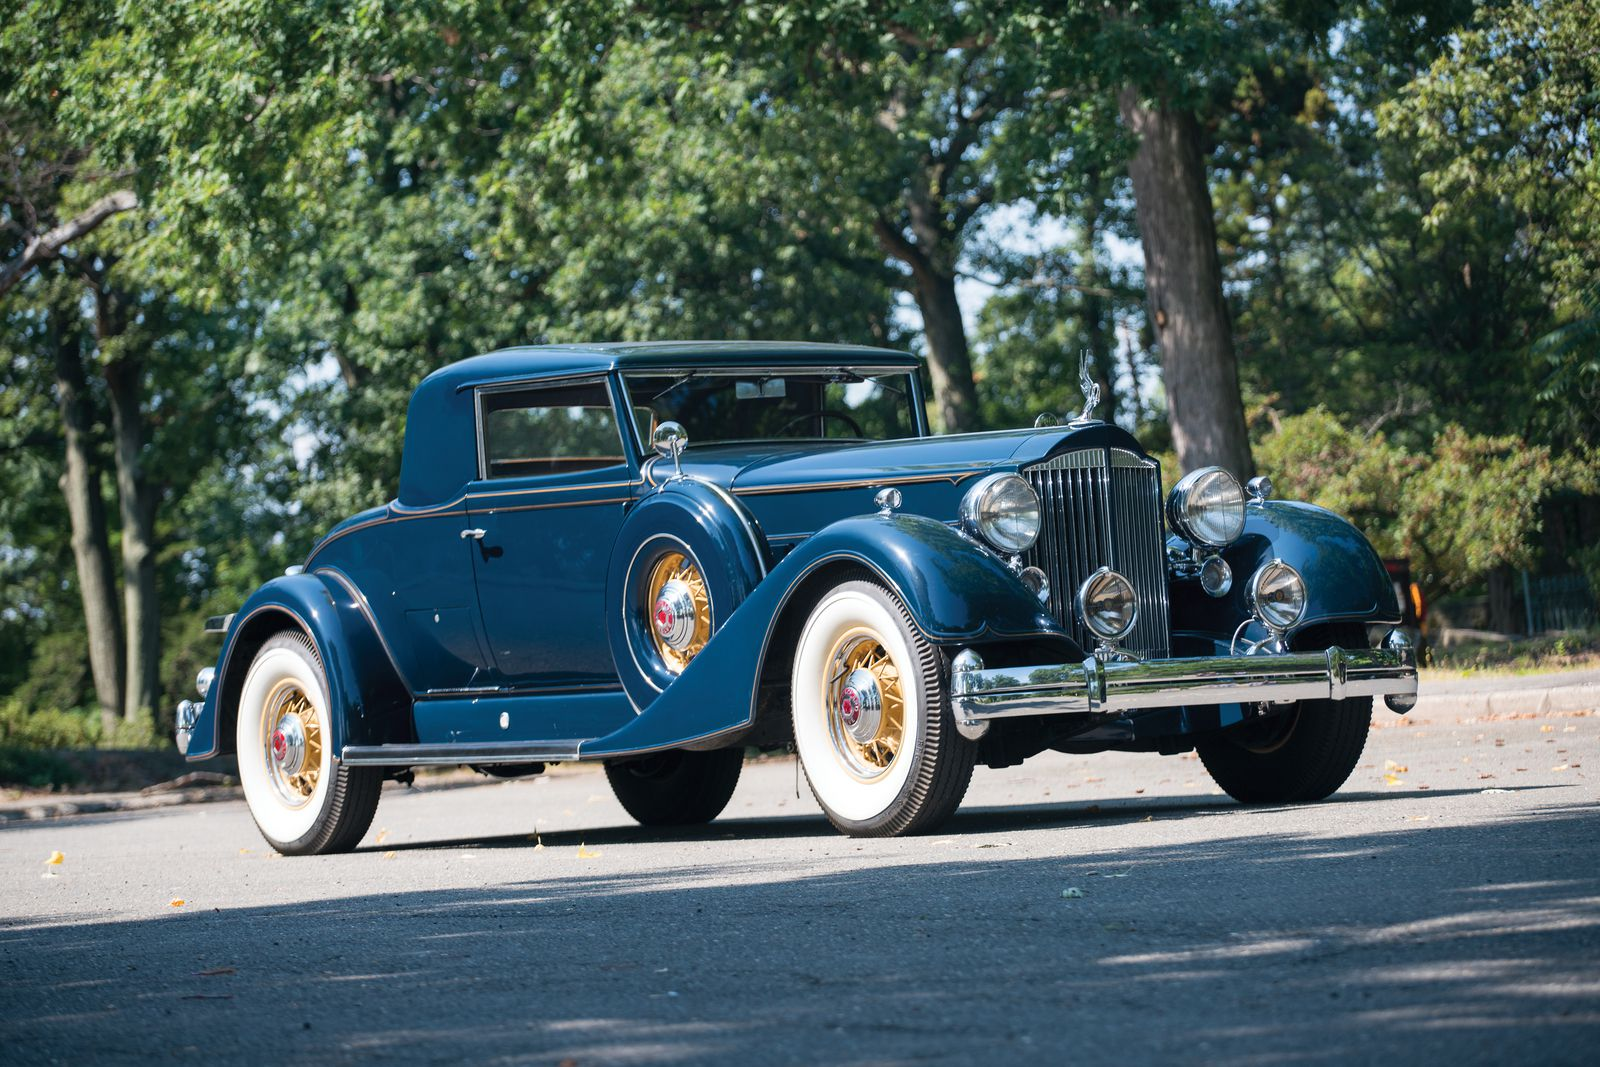 VOITURES DE LEGENDE (1114) : PACKARD TWELVE  SERIES 1107  2/4 PASSENGER COUPE - 1934